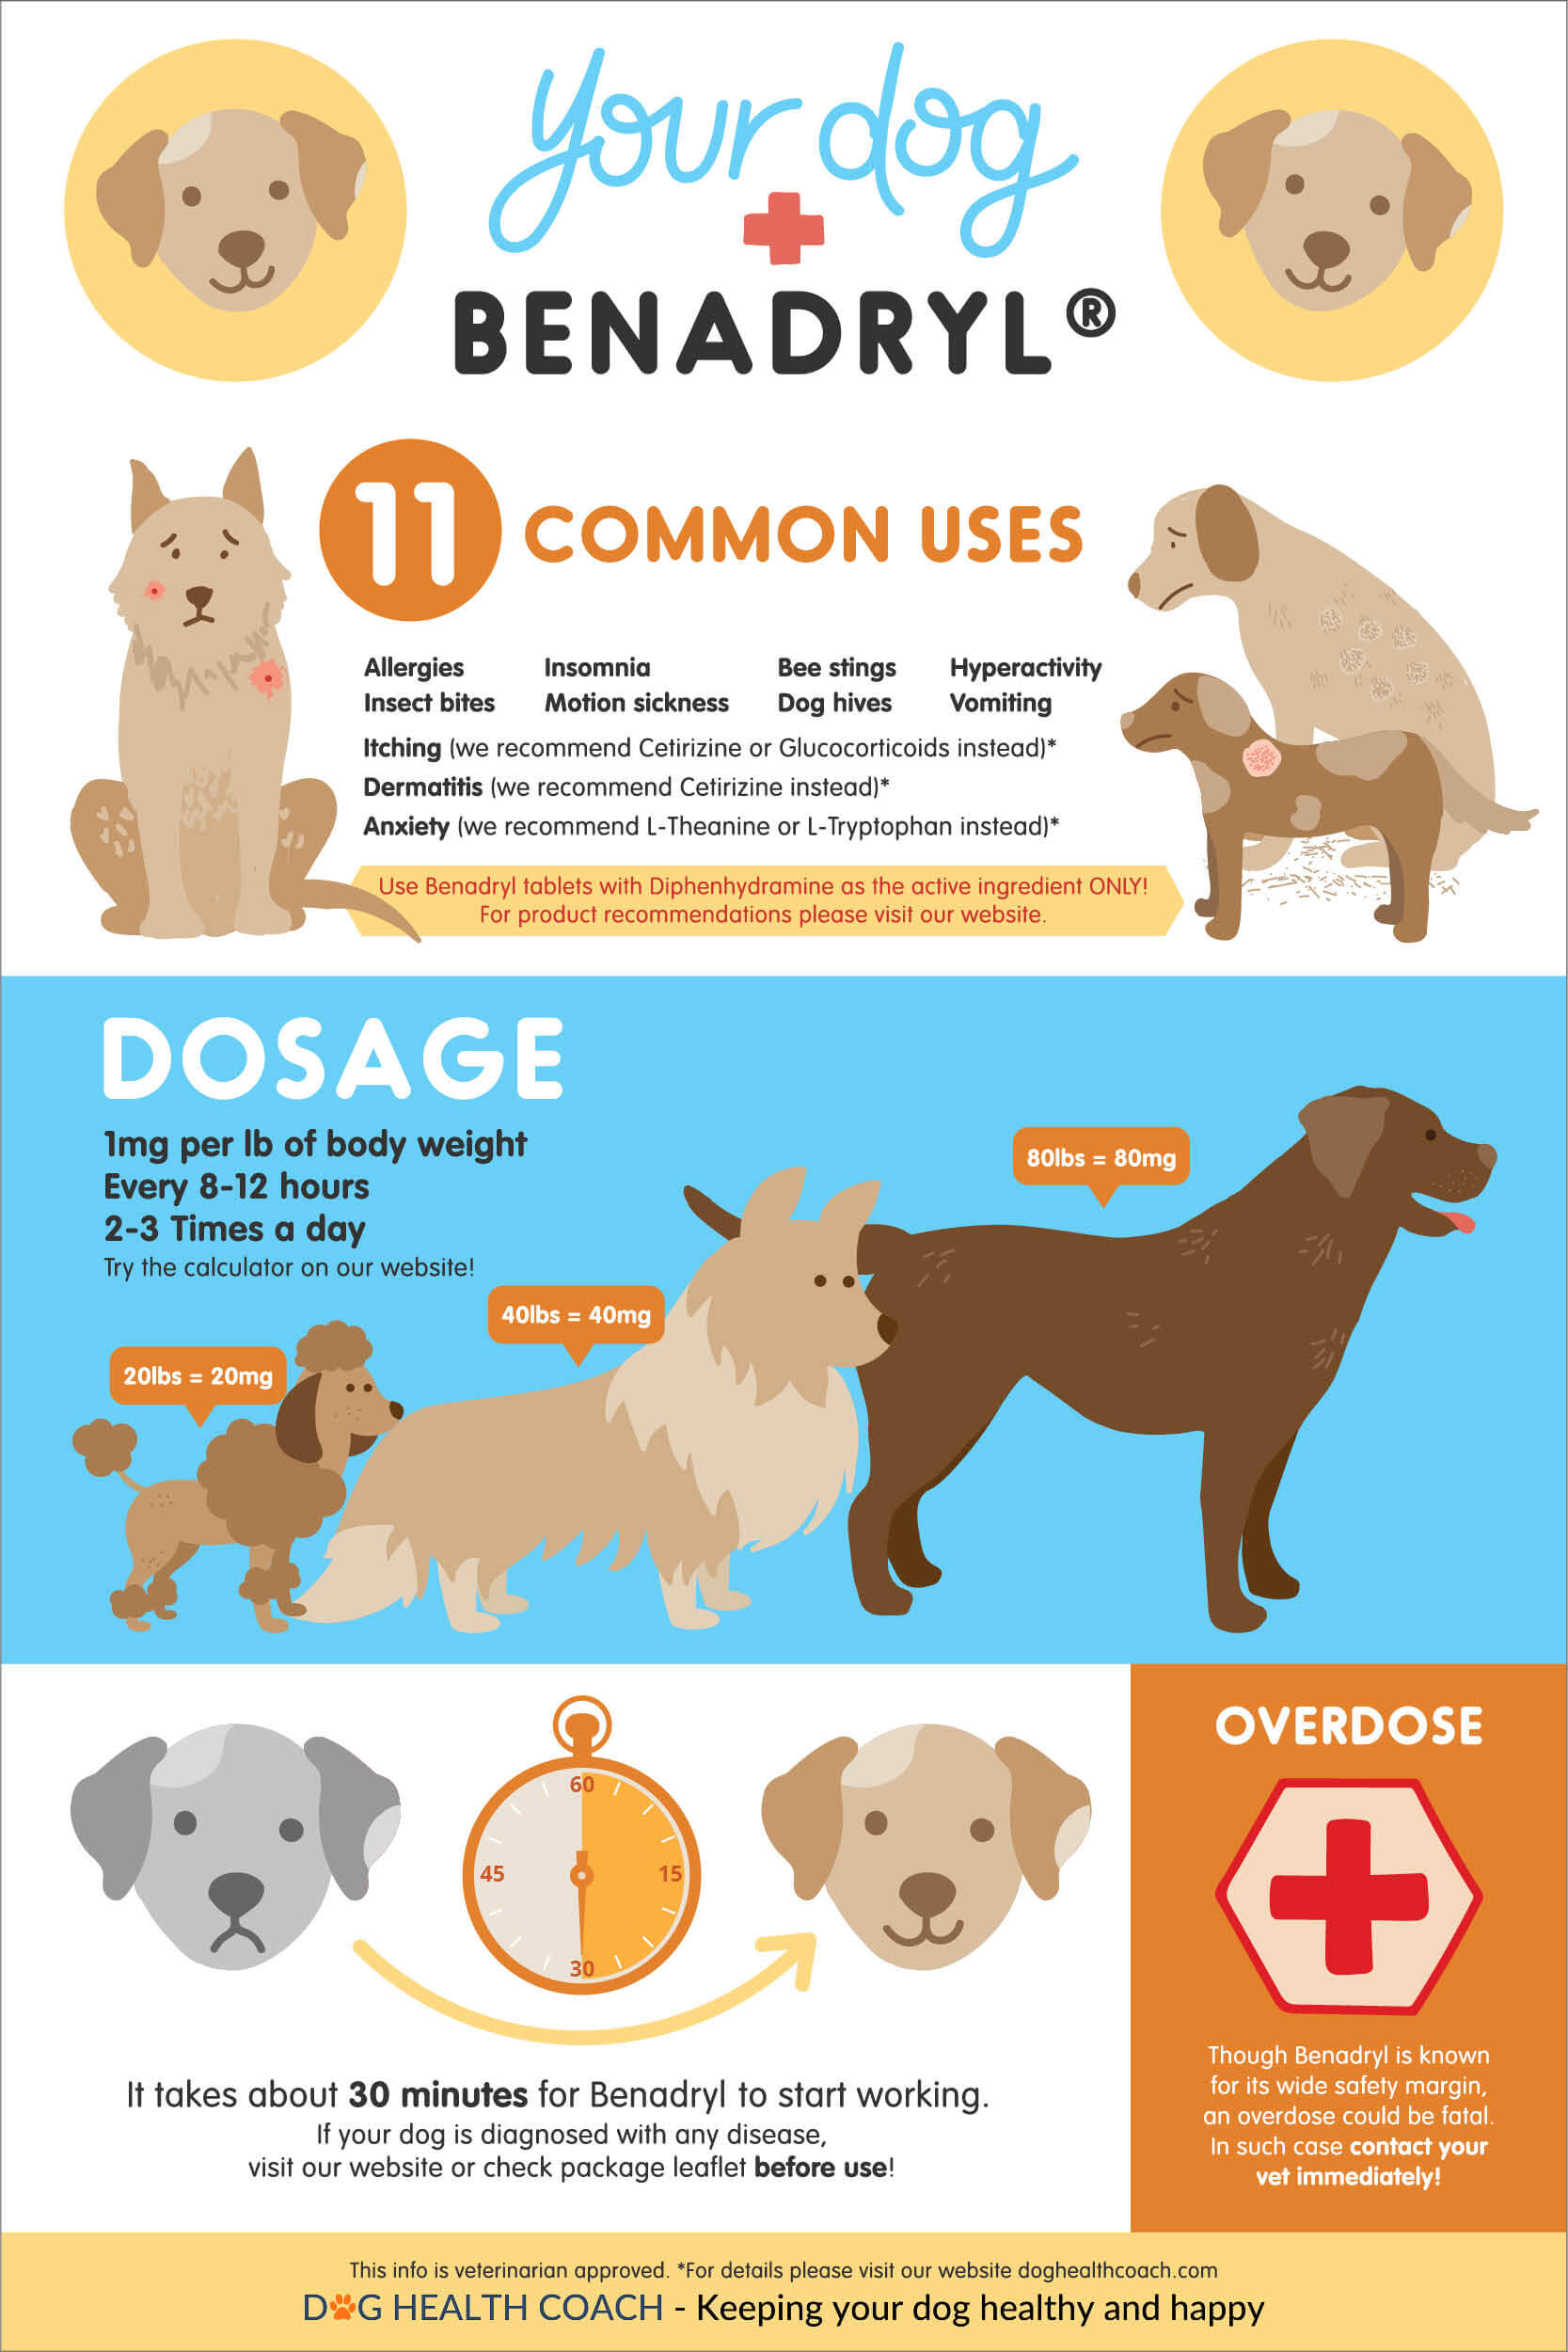 benadryl for dogs: uses, side effects, dosage, overdose vet approved!